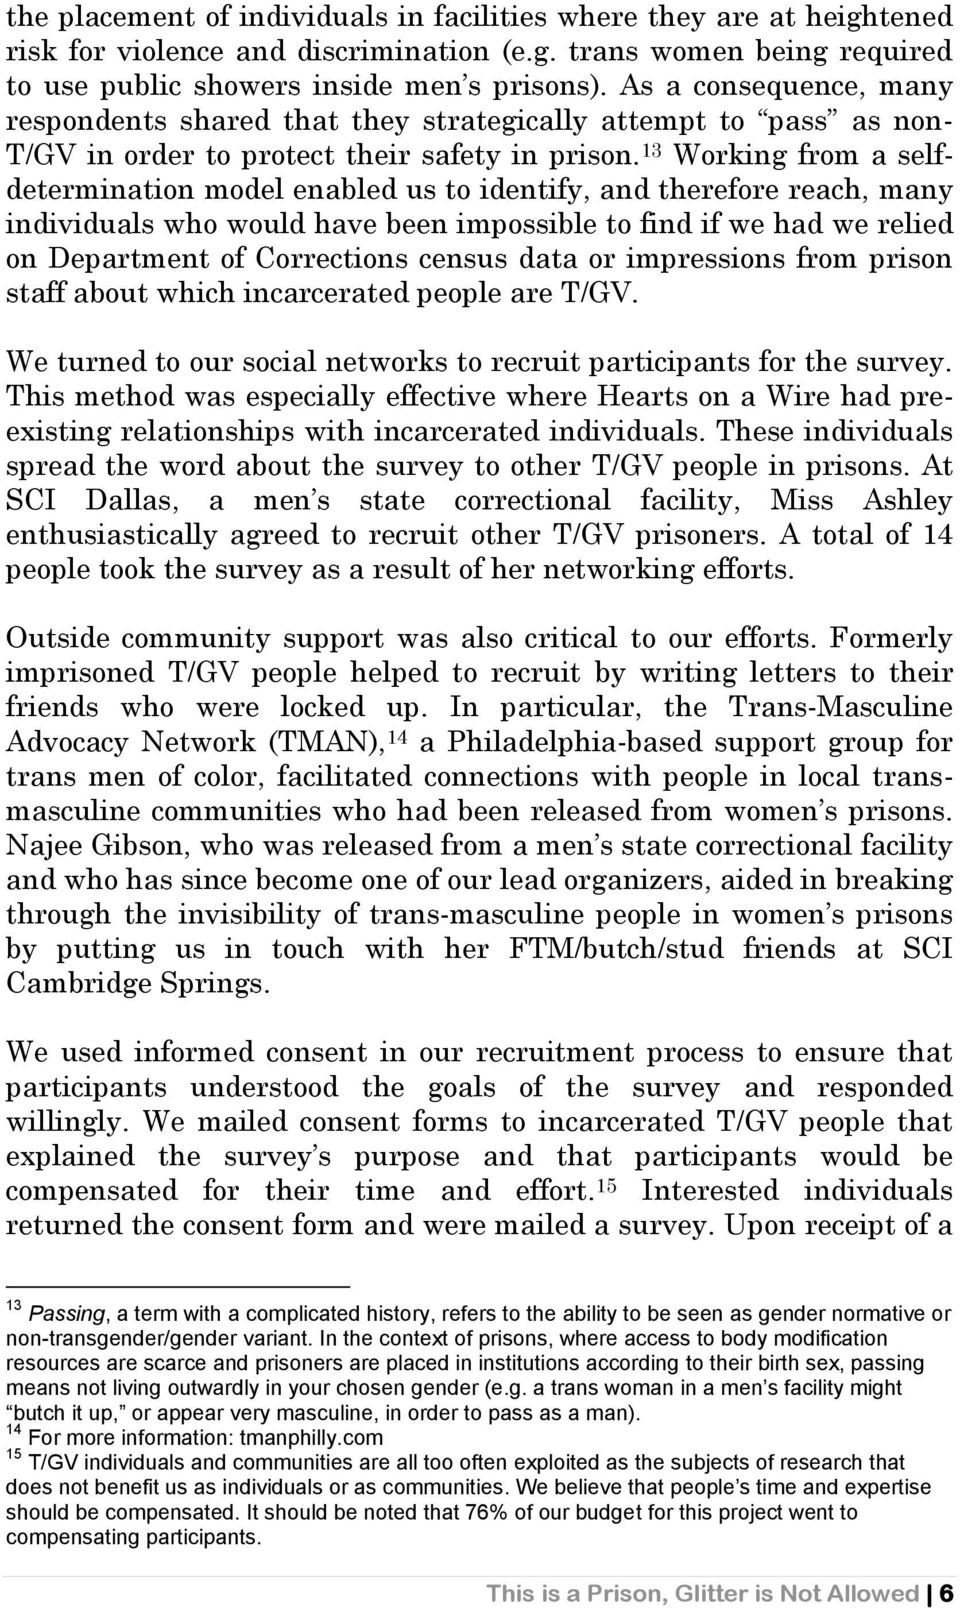 13 Working from a selfdetermination model enabled us to identify, and therefore reach, many individuals who would have been impossible to find if we had we relied on Department of Corrections census